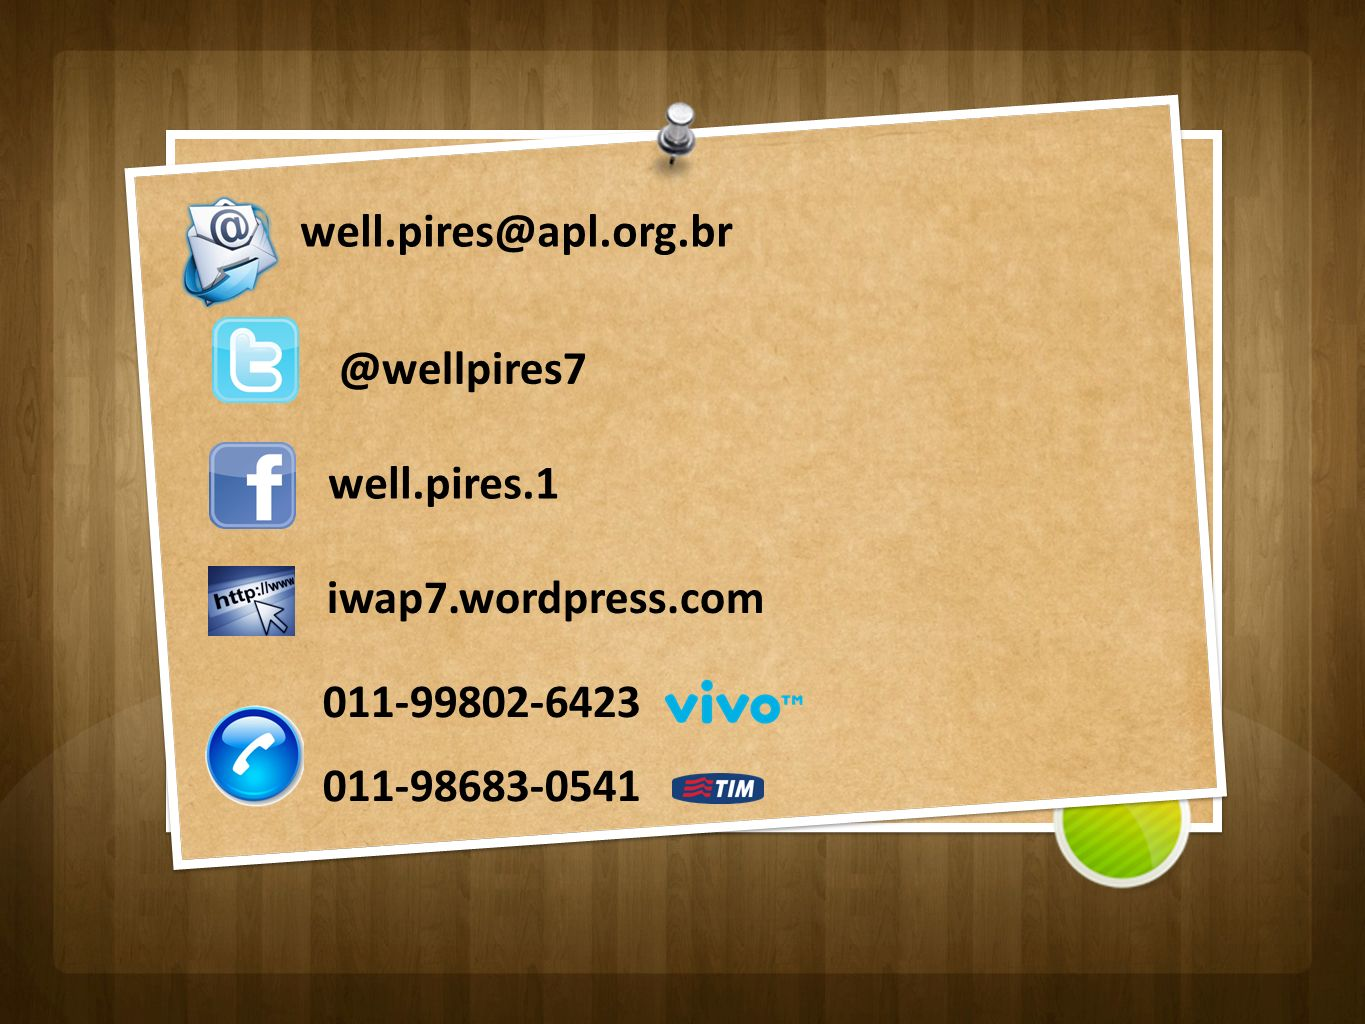 well.pires@apl.org.br @wellpires7 well.pires.1 iwap7.wordpress.com 011-99802-6423 011-98683-0541